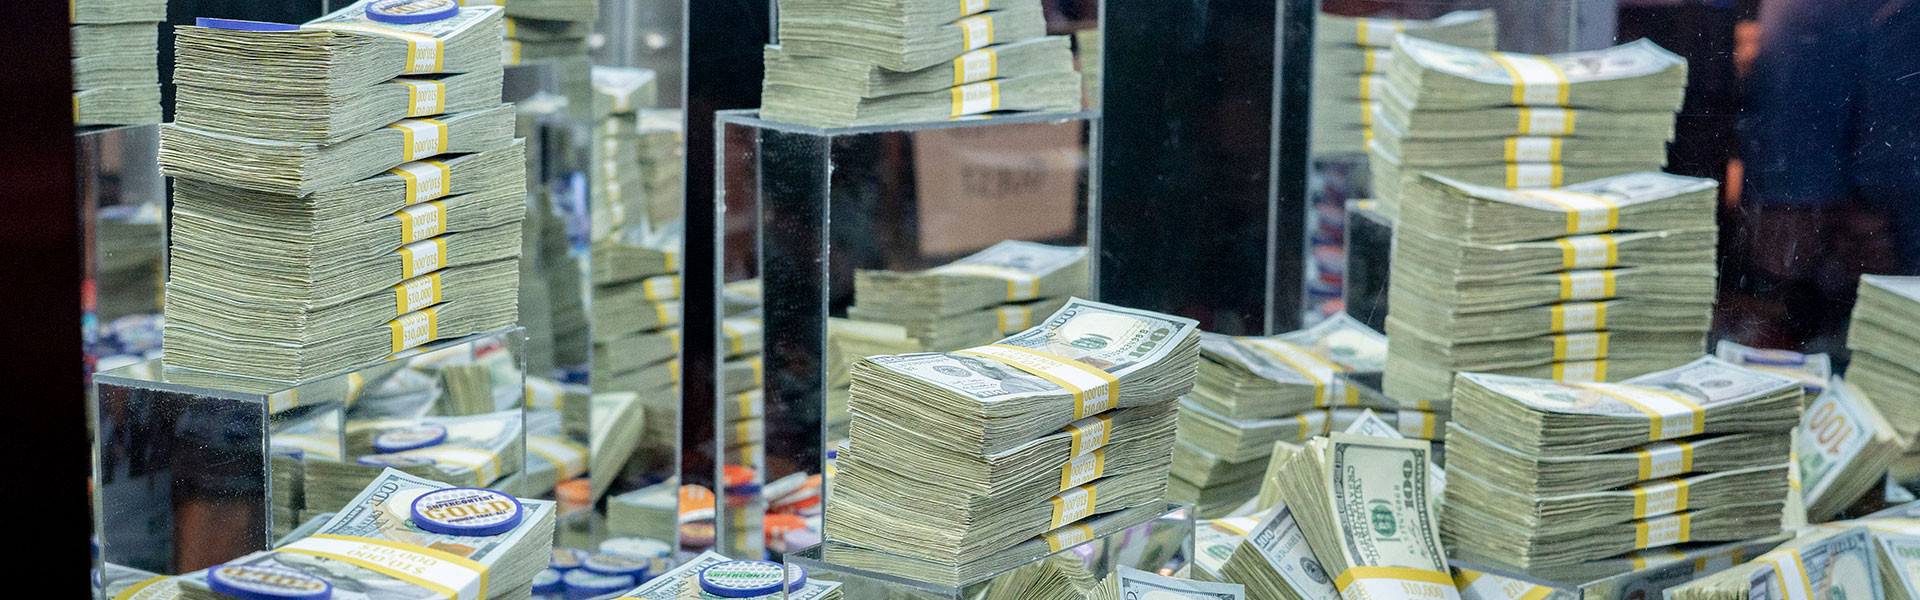 Supercontest Gold Standings at our Las Vegas Hotel and Casino | Stacks of Cash